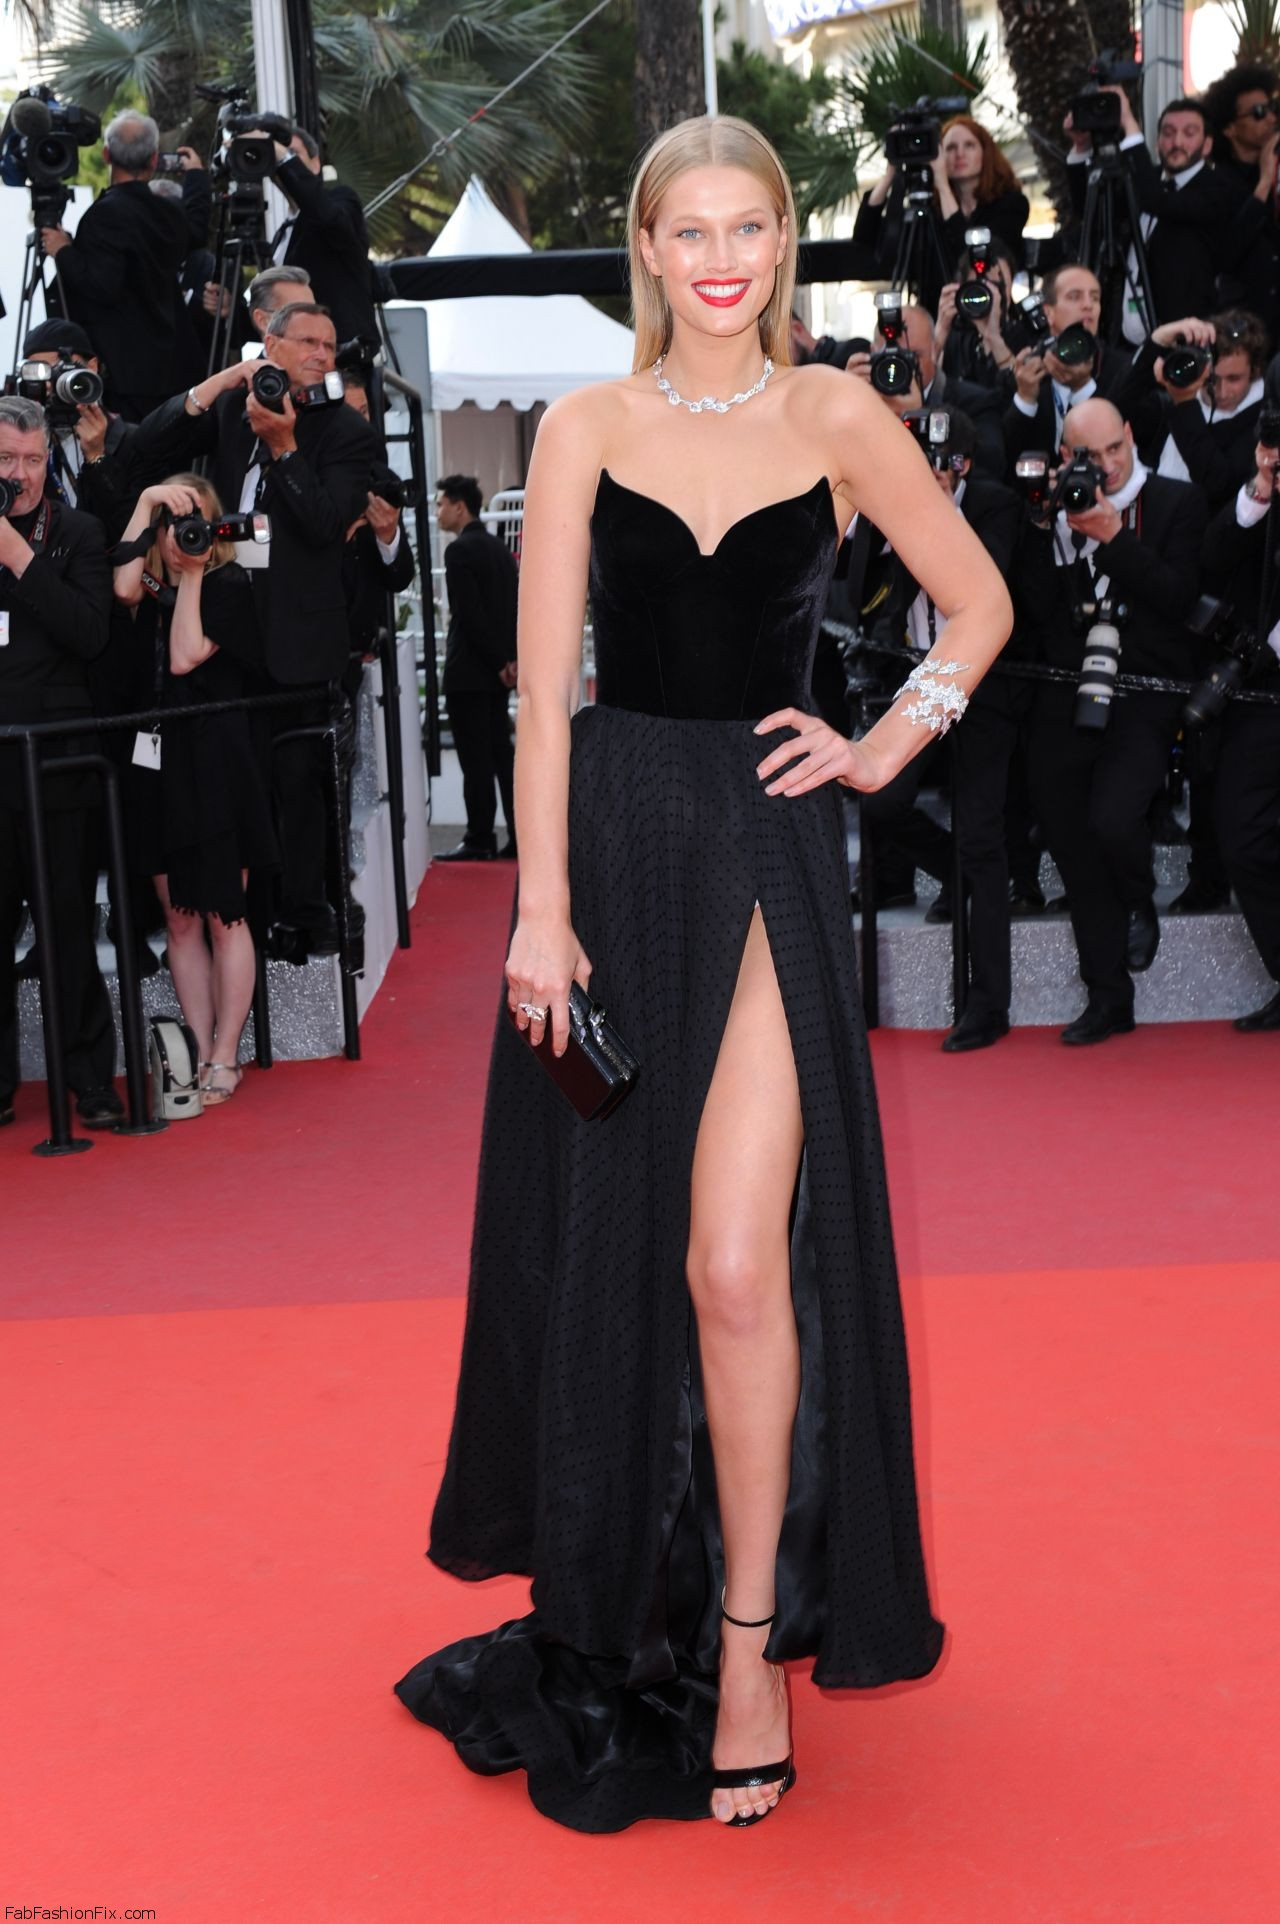 toni-garrn-the-loving-premiere-at-69th-cannes-film-festival-5-16-2016-5